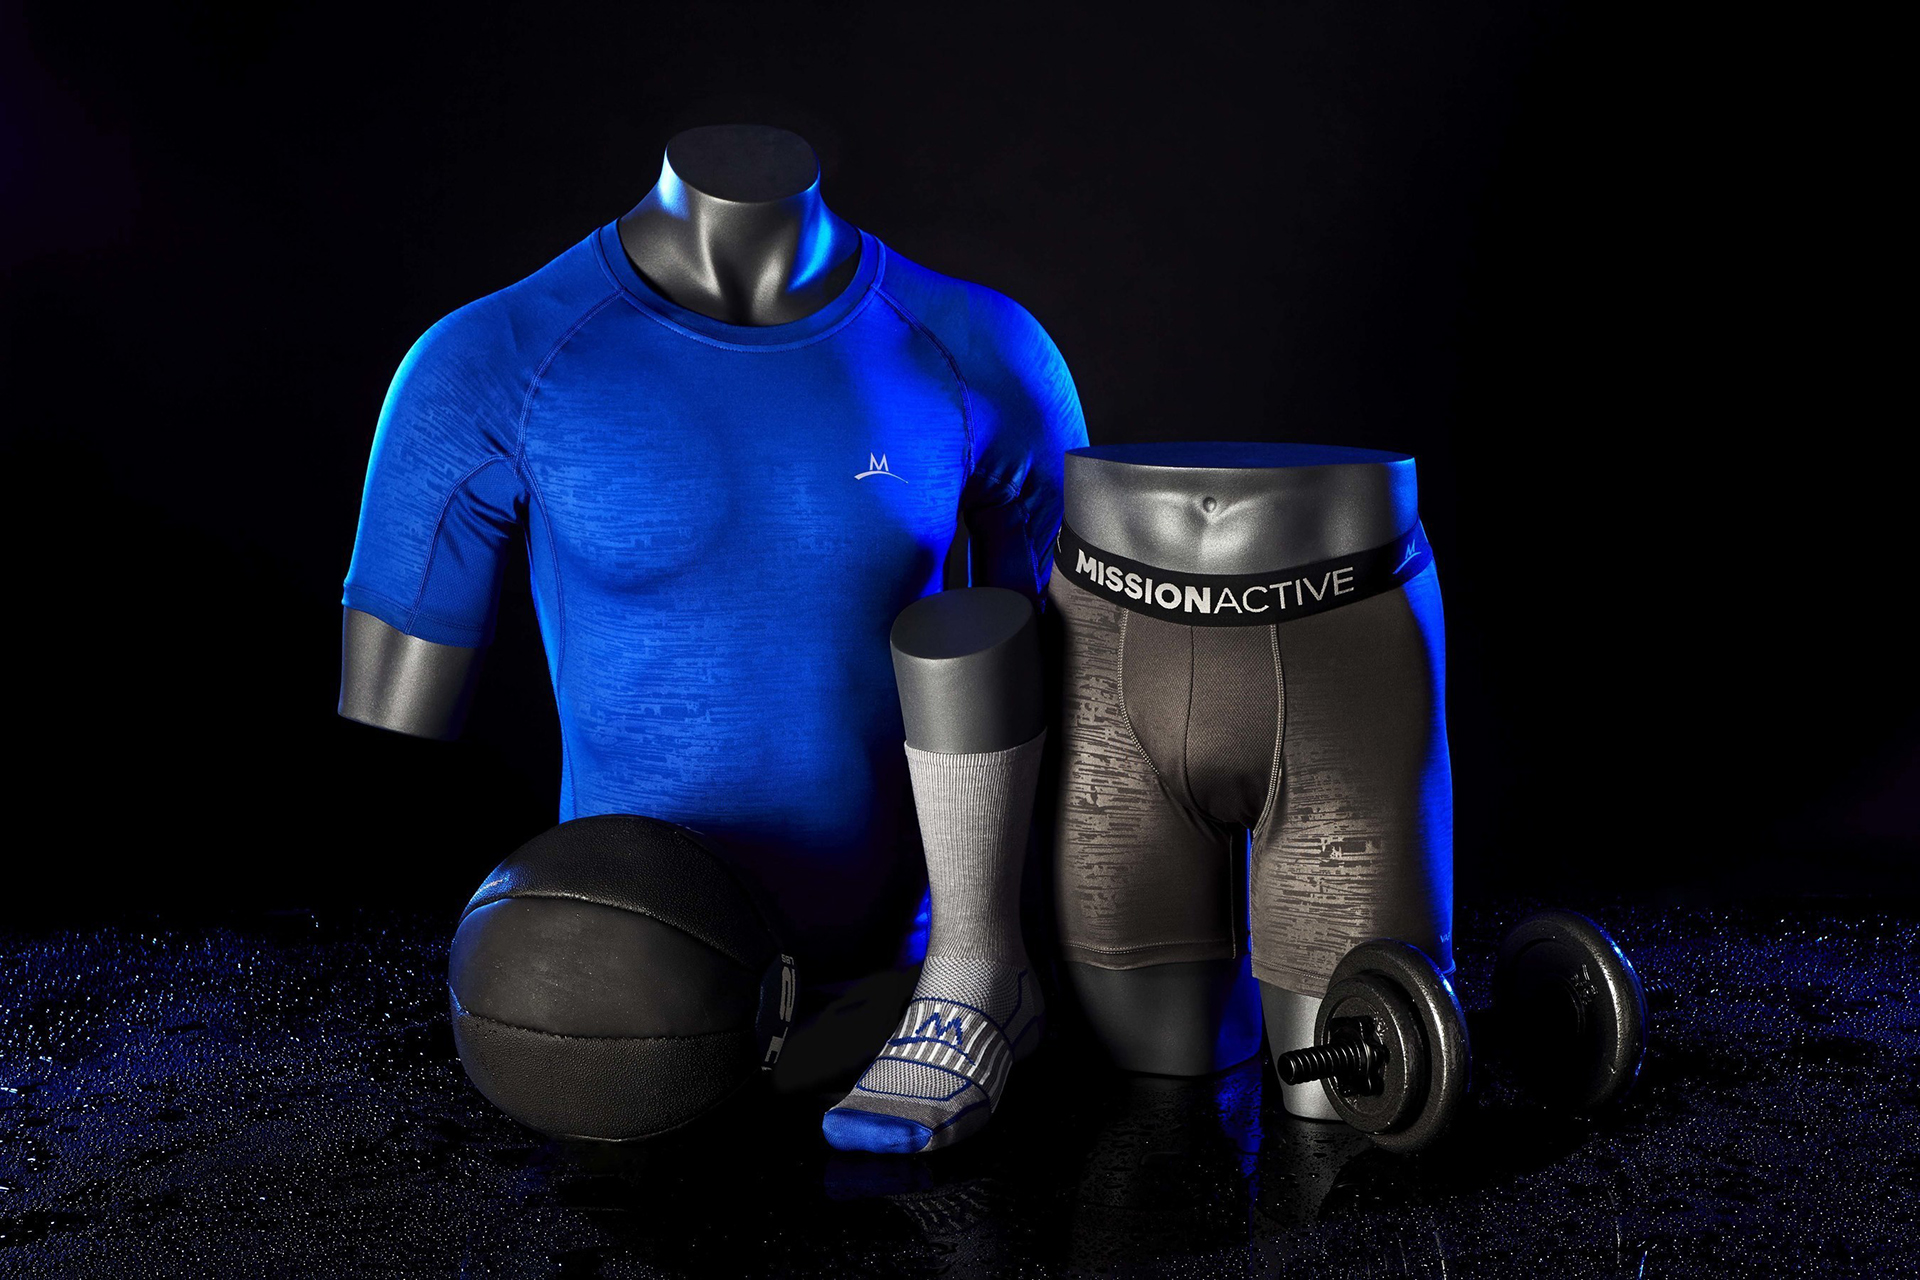 Mission Athletecare Launches VaporActive Cooling Collection